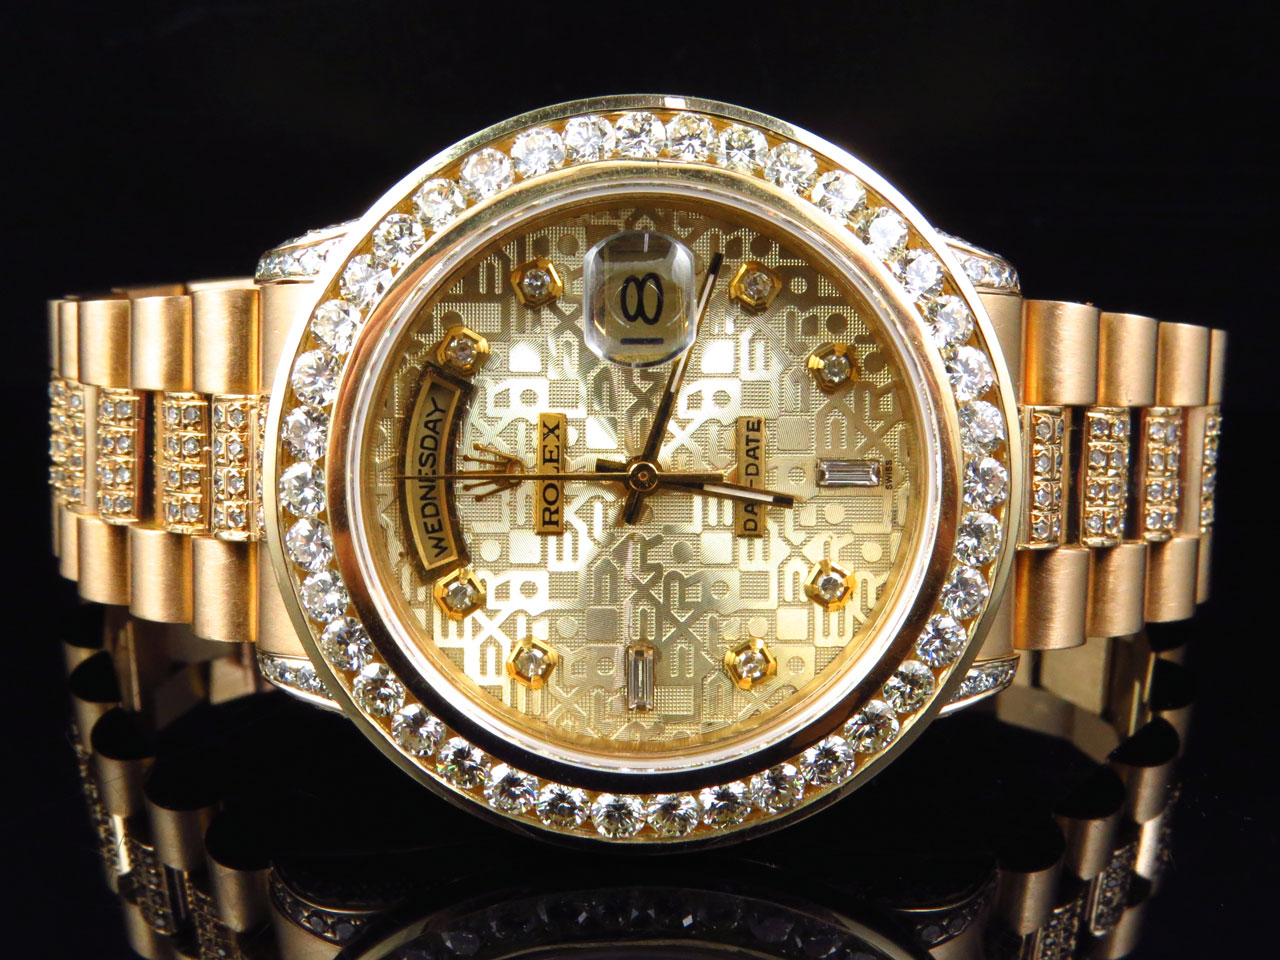 Details About 18k Yellow Gold Mens Rolex Presidential Day Date Diamond Bezel Watch 9 5 Ct